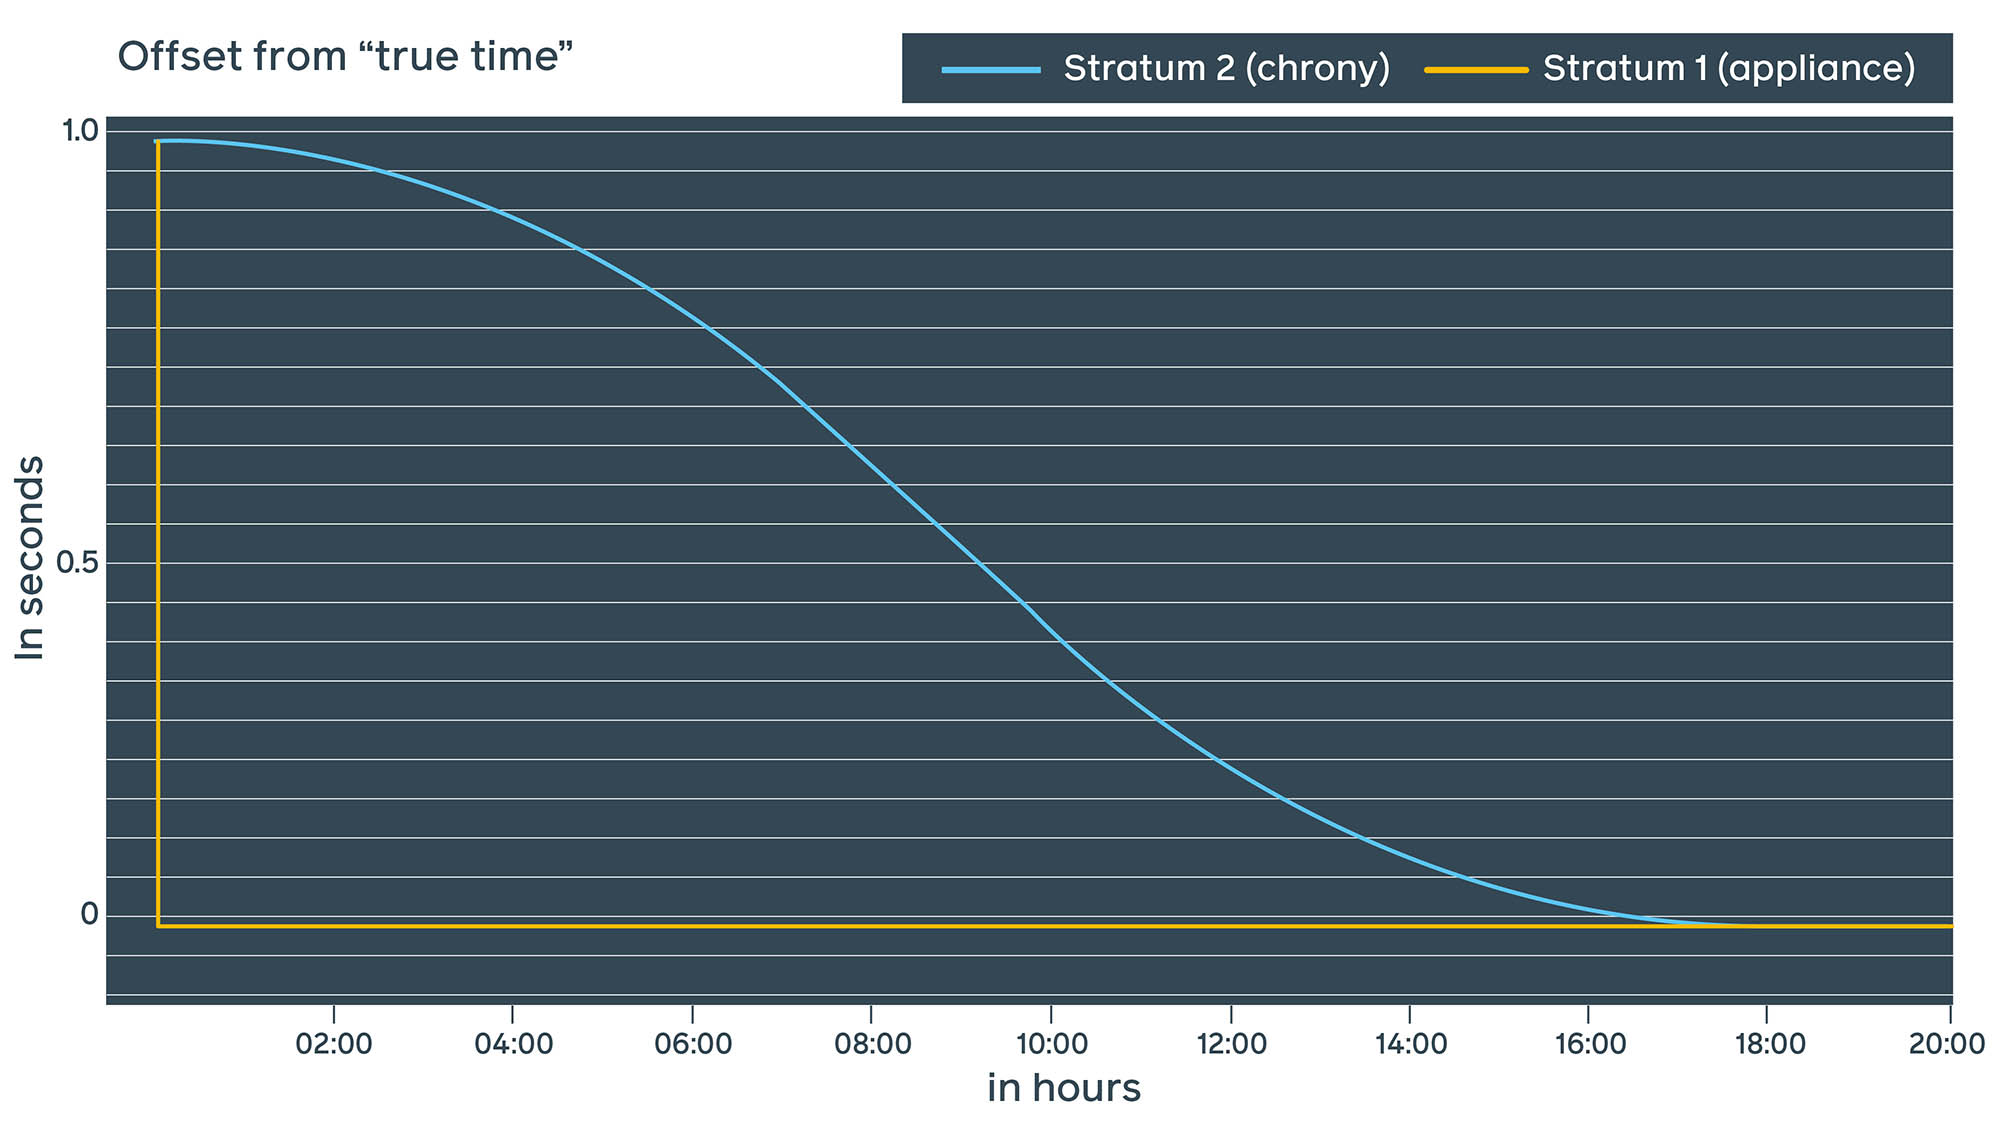 With Facebook public NTP, we decided to go with the chrony approach and smear the leap second after the event over approximately 18 hours.